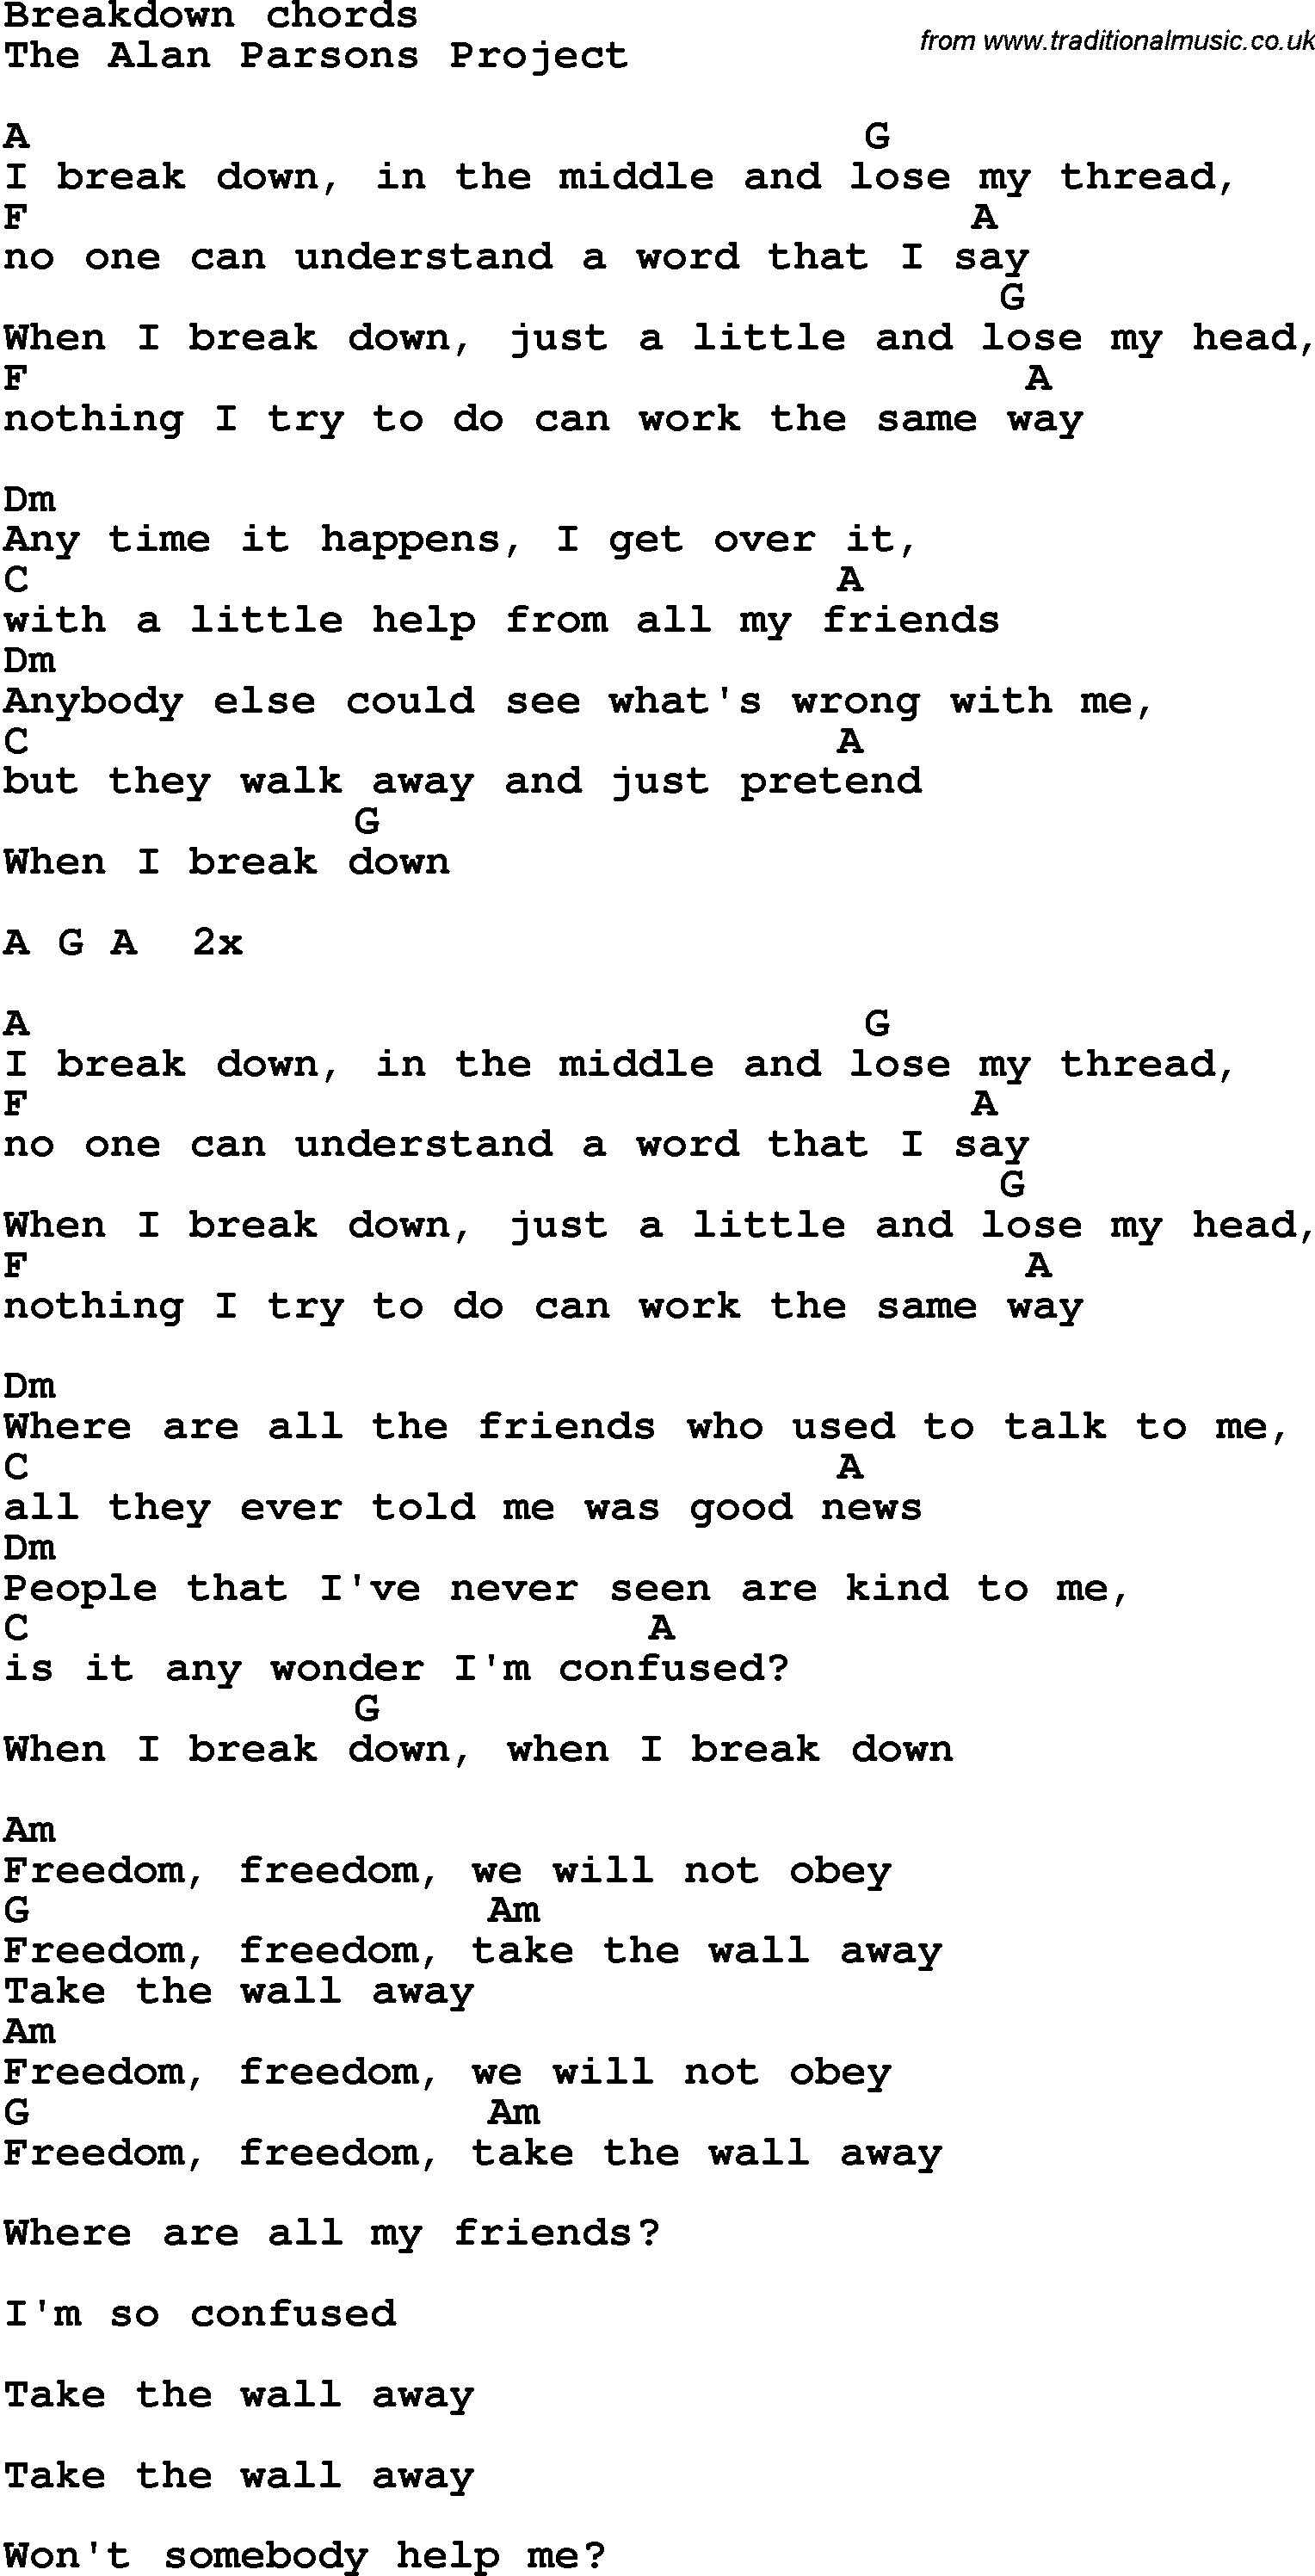 Song Lyrics With Guitar Chords For Breakdown